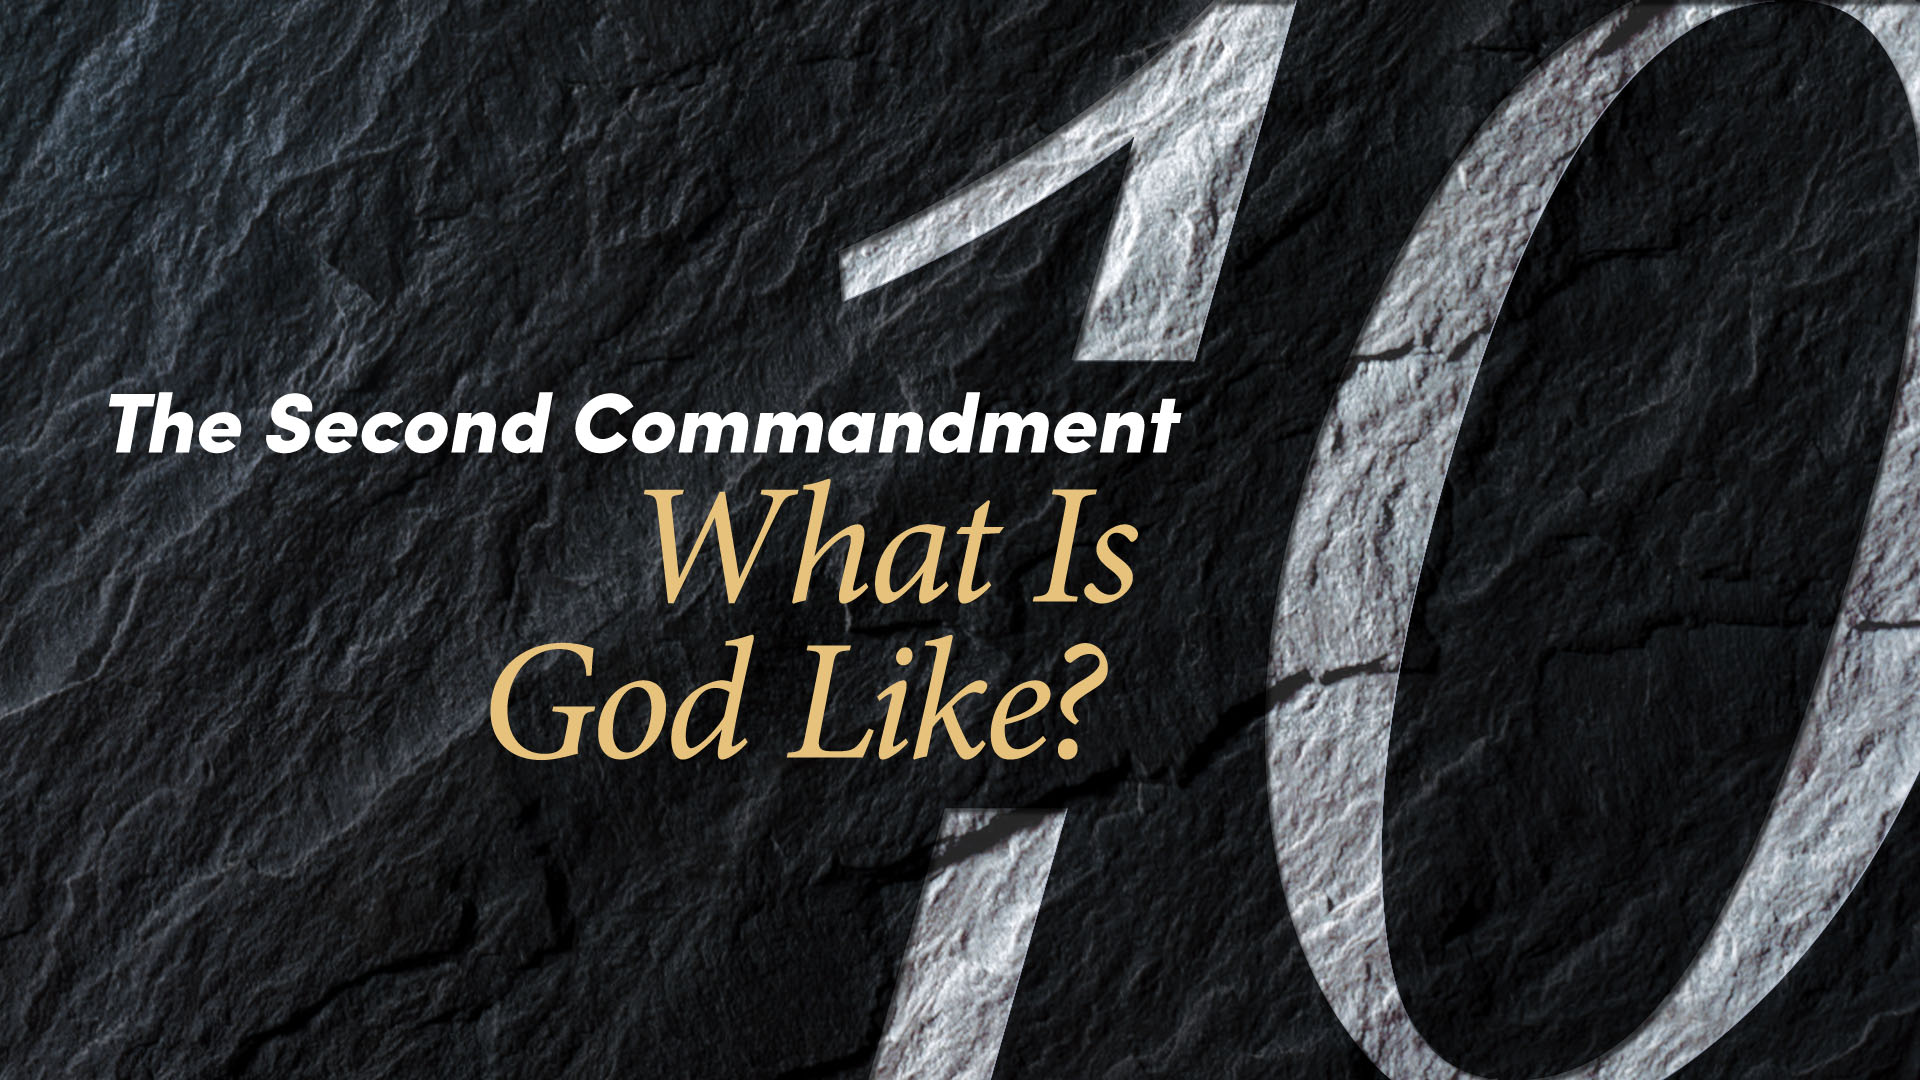 what makes god godlike analysis Question: what is god like answer: every culture in the history of the world has had some concept of what god is like some have assumed that god is in control of the weather and have made images of a storm god throwing lightning bolts around (baal worship in canaan.